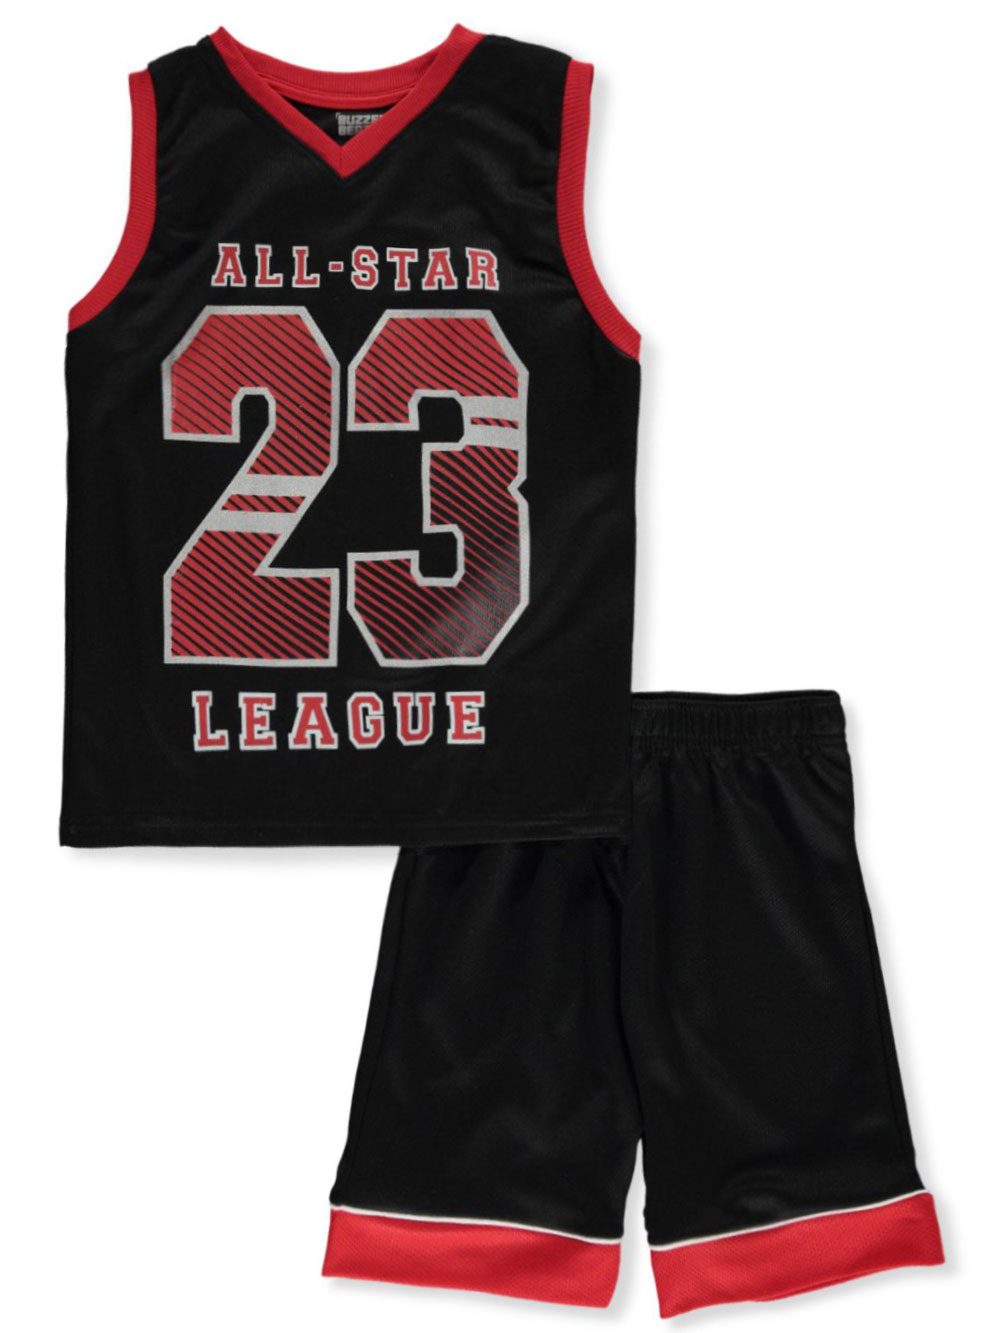 All-Star League 2-Piece Shorts Set Outfit